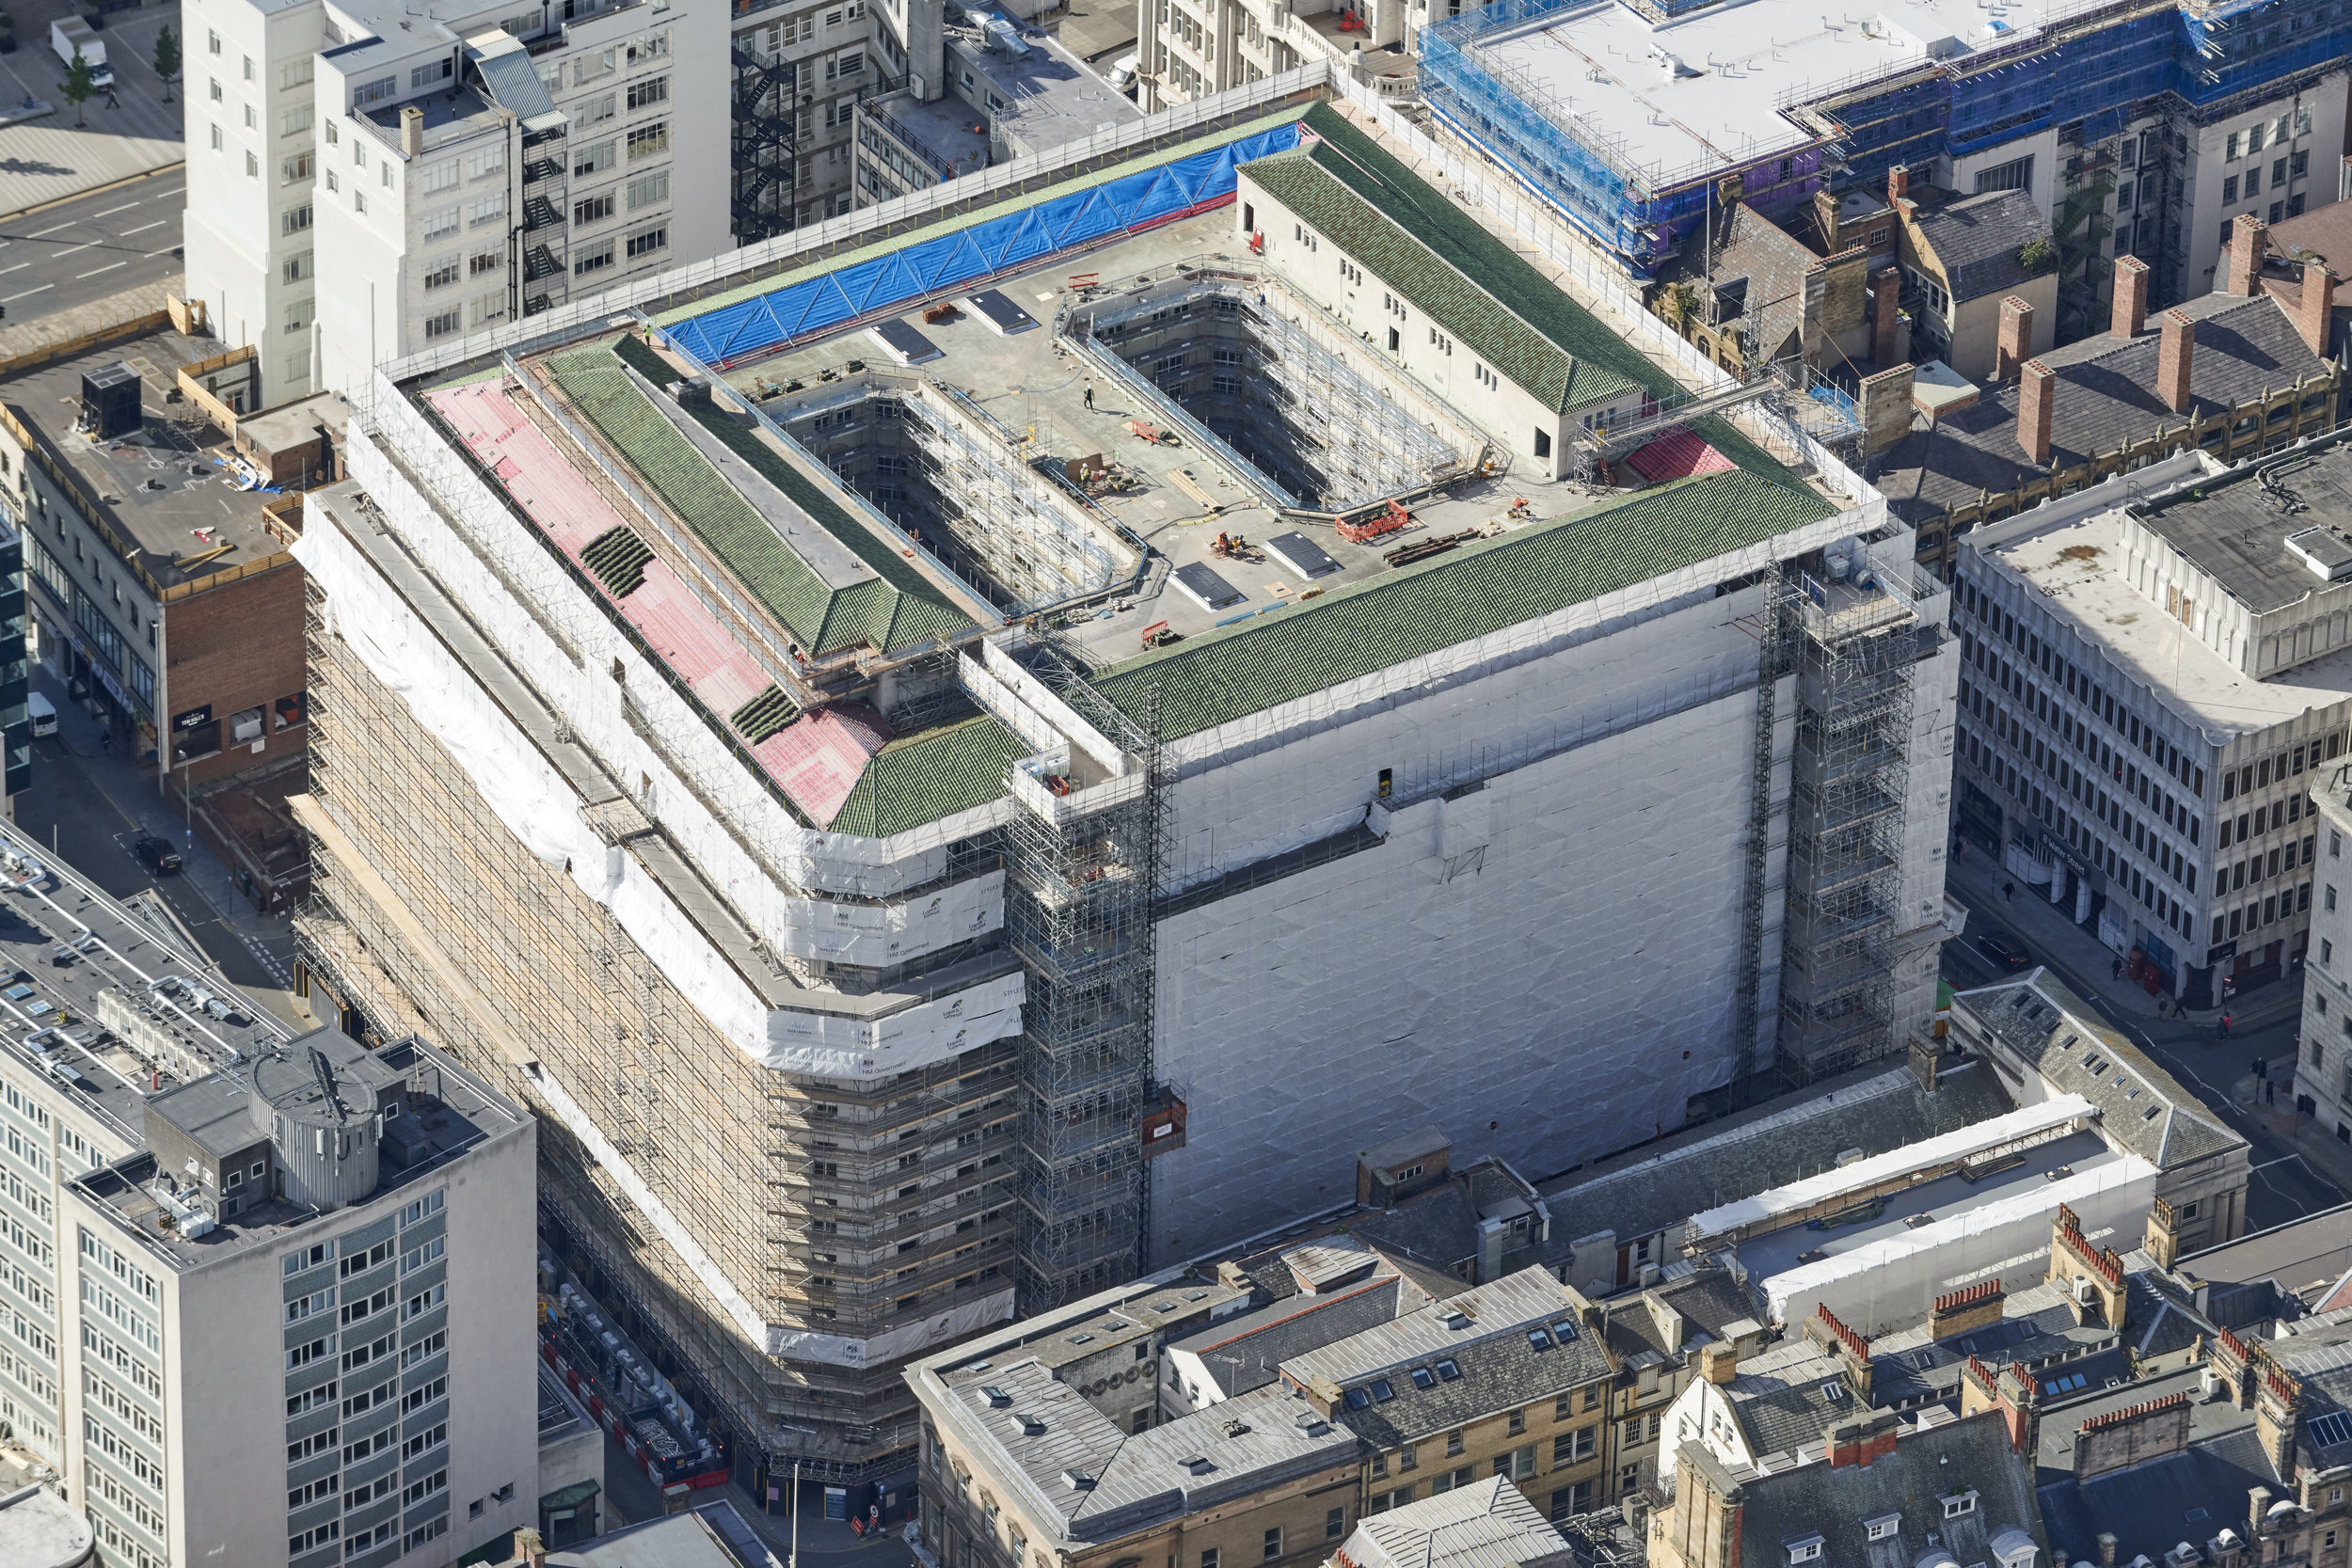 India Building Liverpool for Crossways Scaffolding